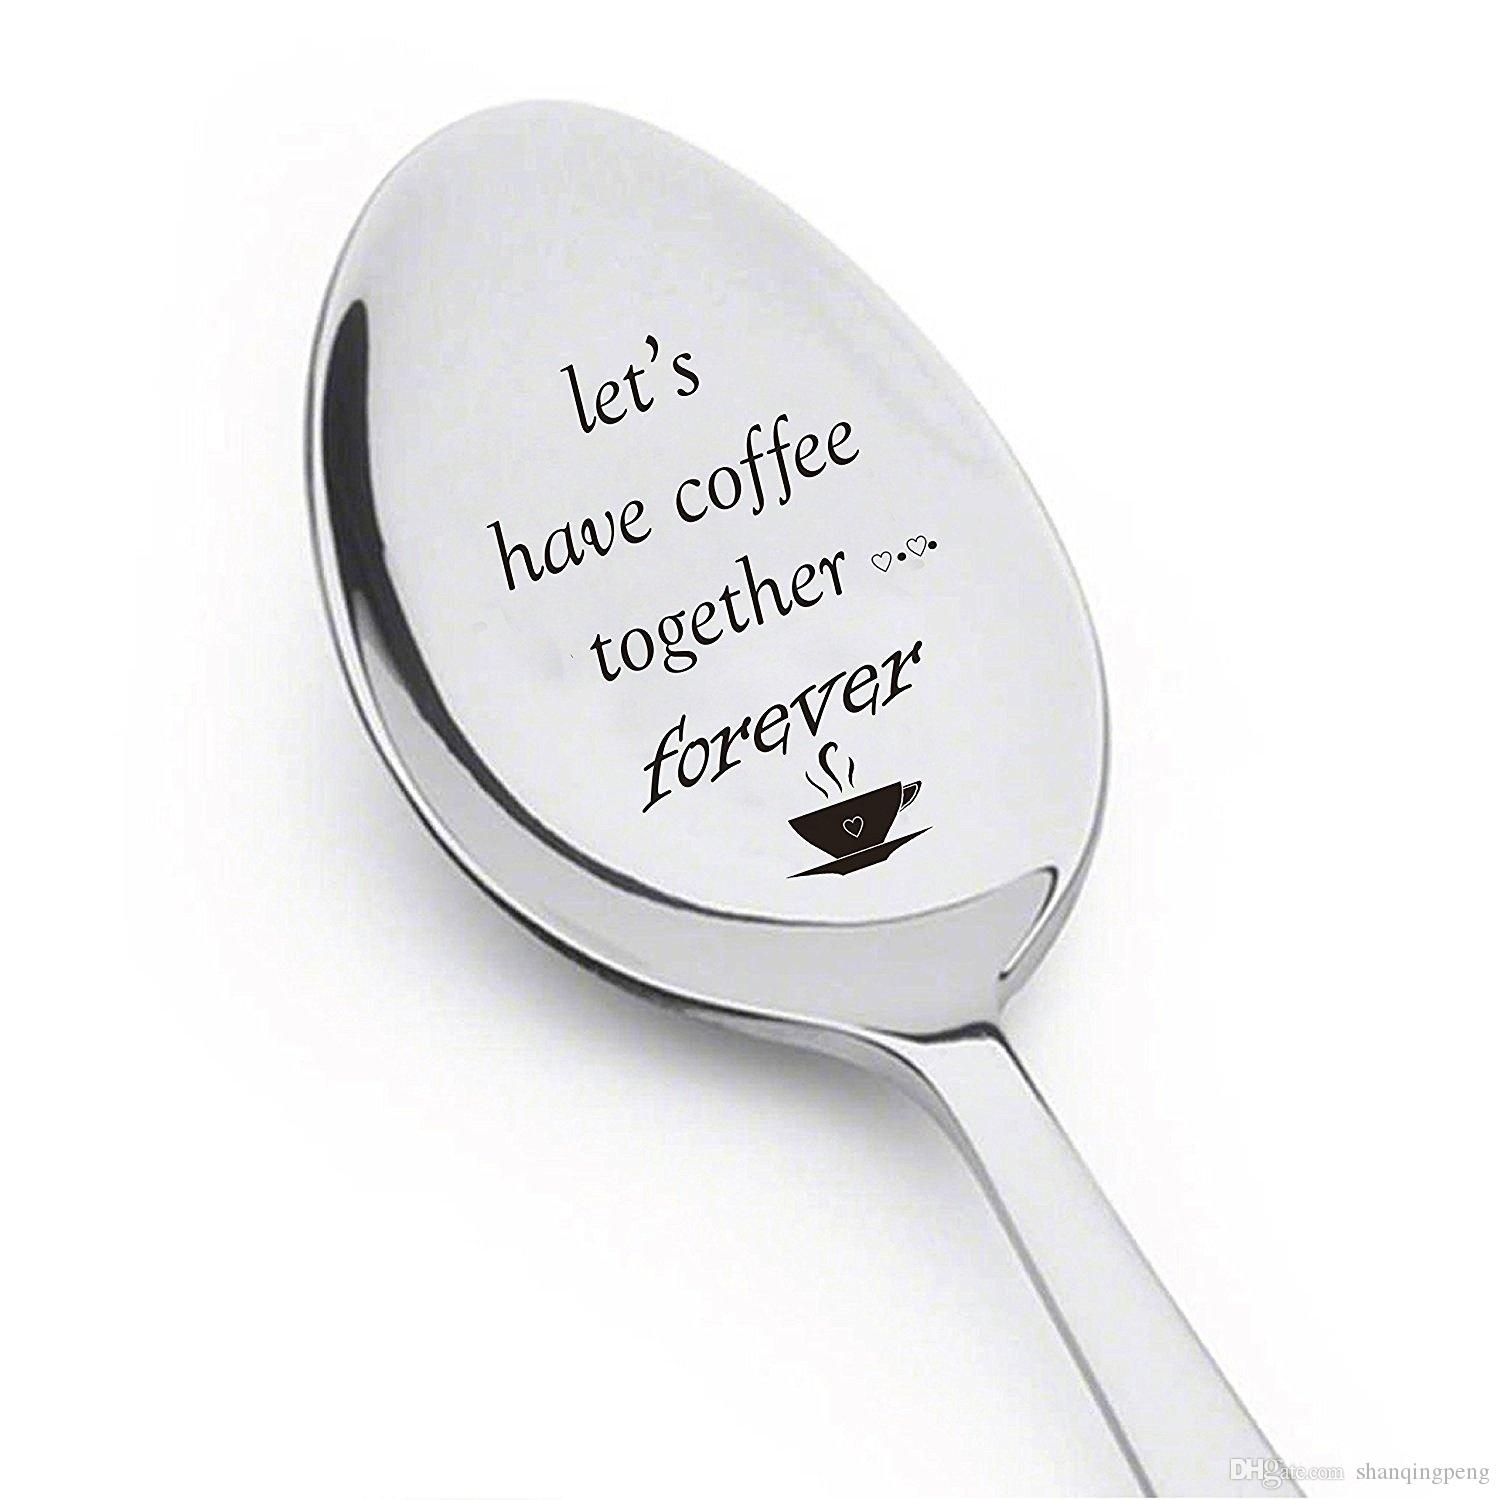 Stainless Steel Espresso Spoons, Let's Have Coffee Together Forever - Engraved Spoon - Cute Coffee Lovers Gift for Friends Who Are Moving A